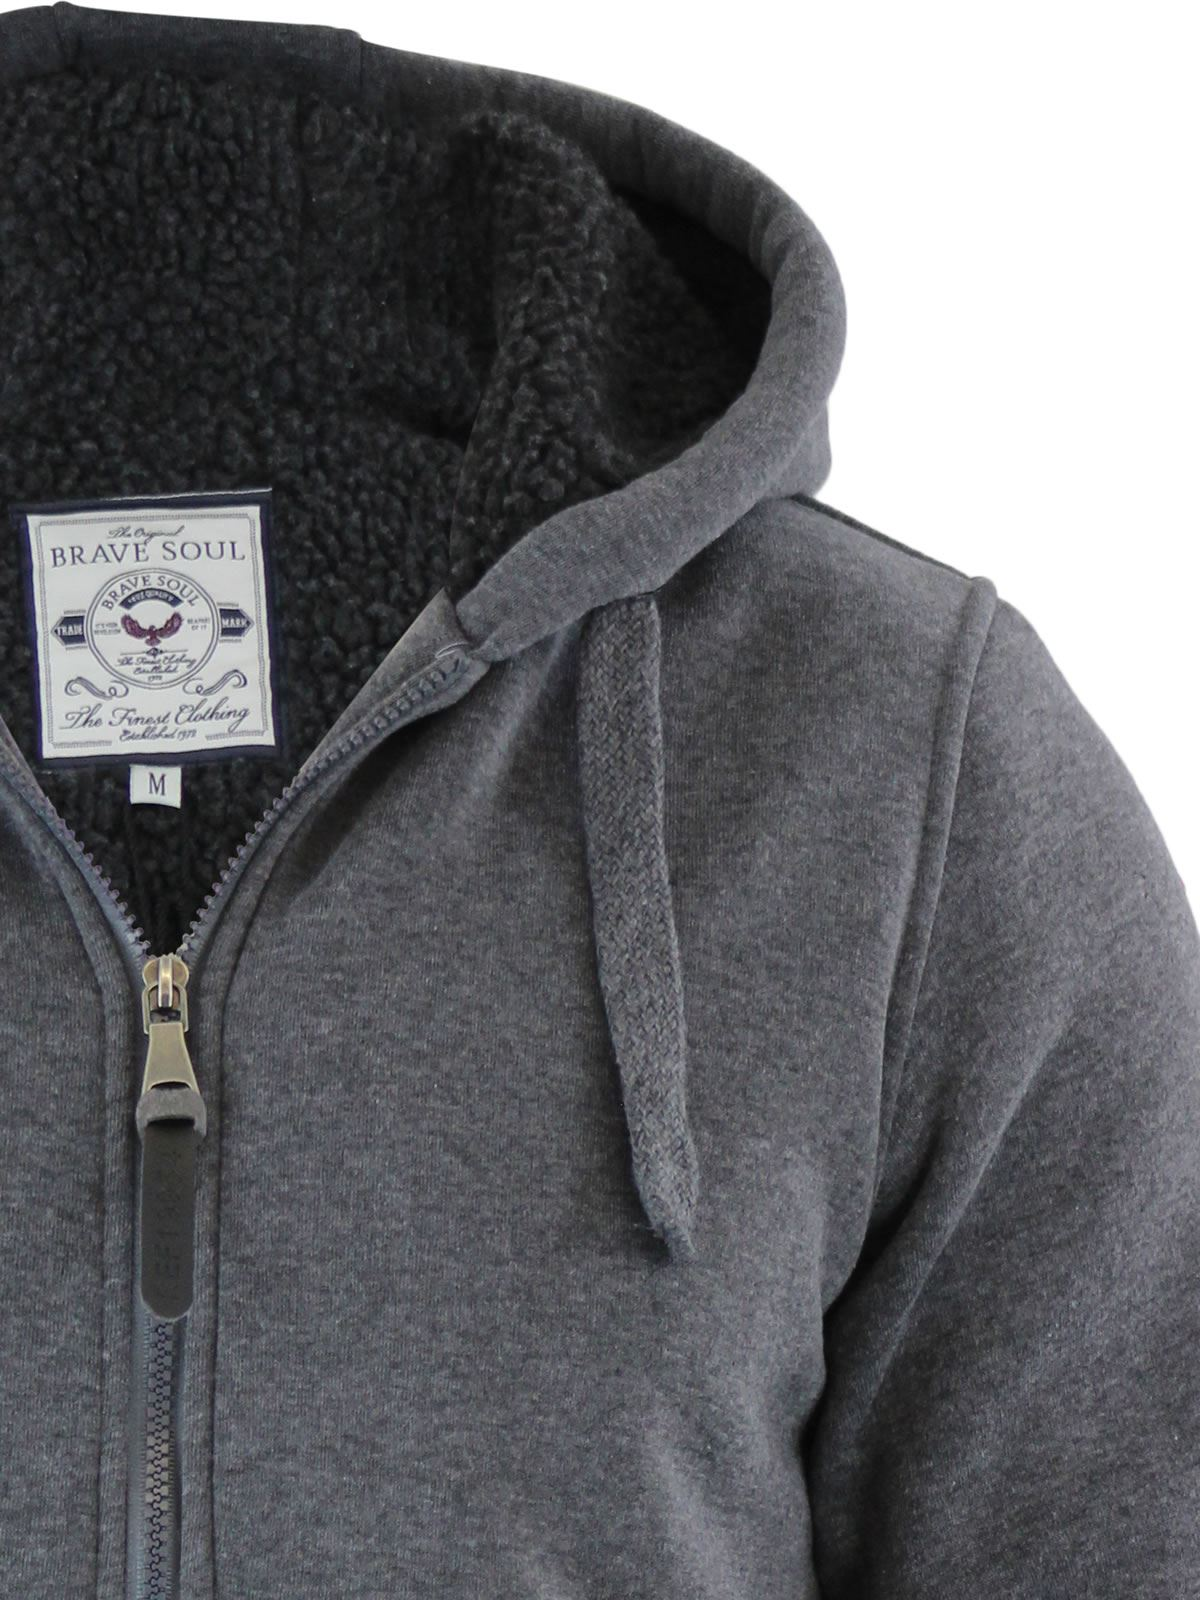 Brave-Soul-Zone-Mens-Hoodie-Sherpa-Fleece-Lined-Zip-Up-Hooded-Sweater thumbnail 16